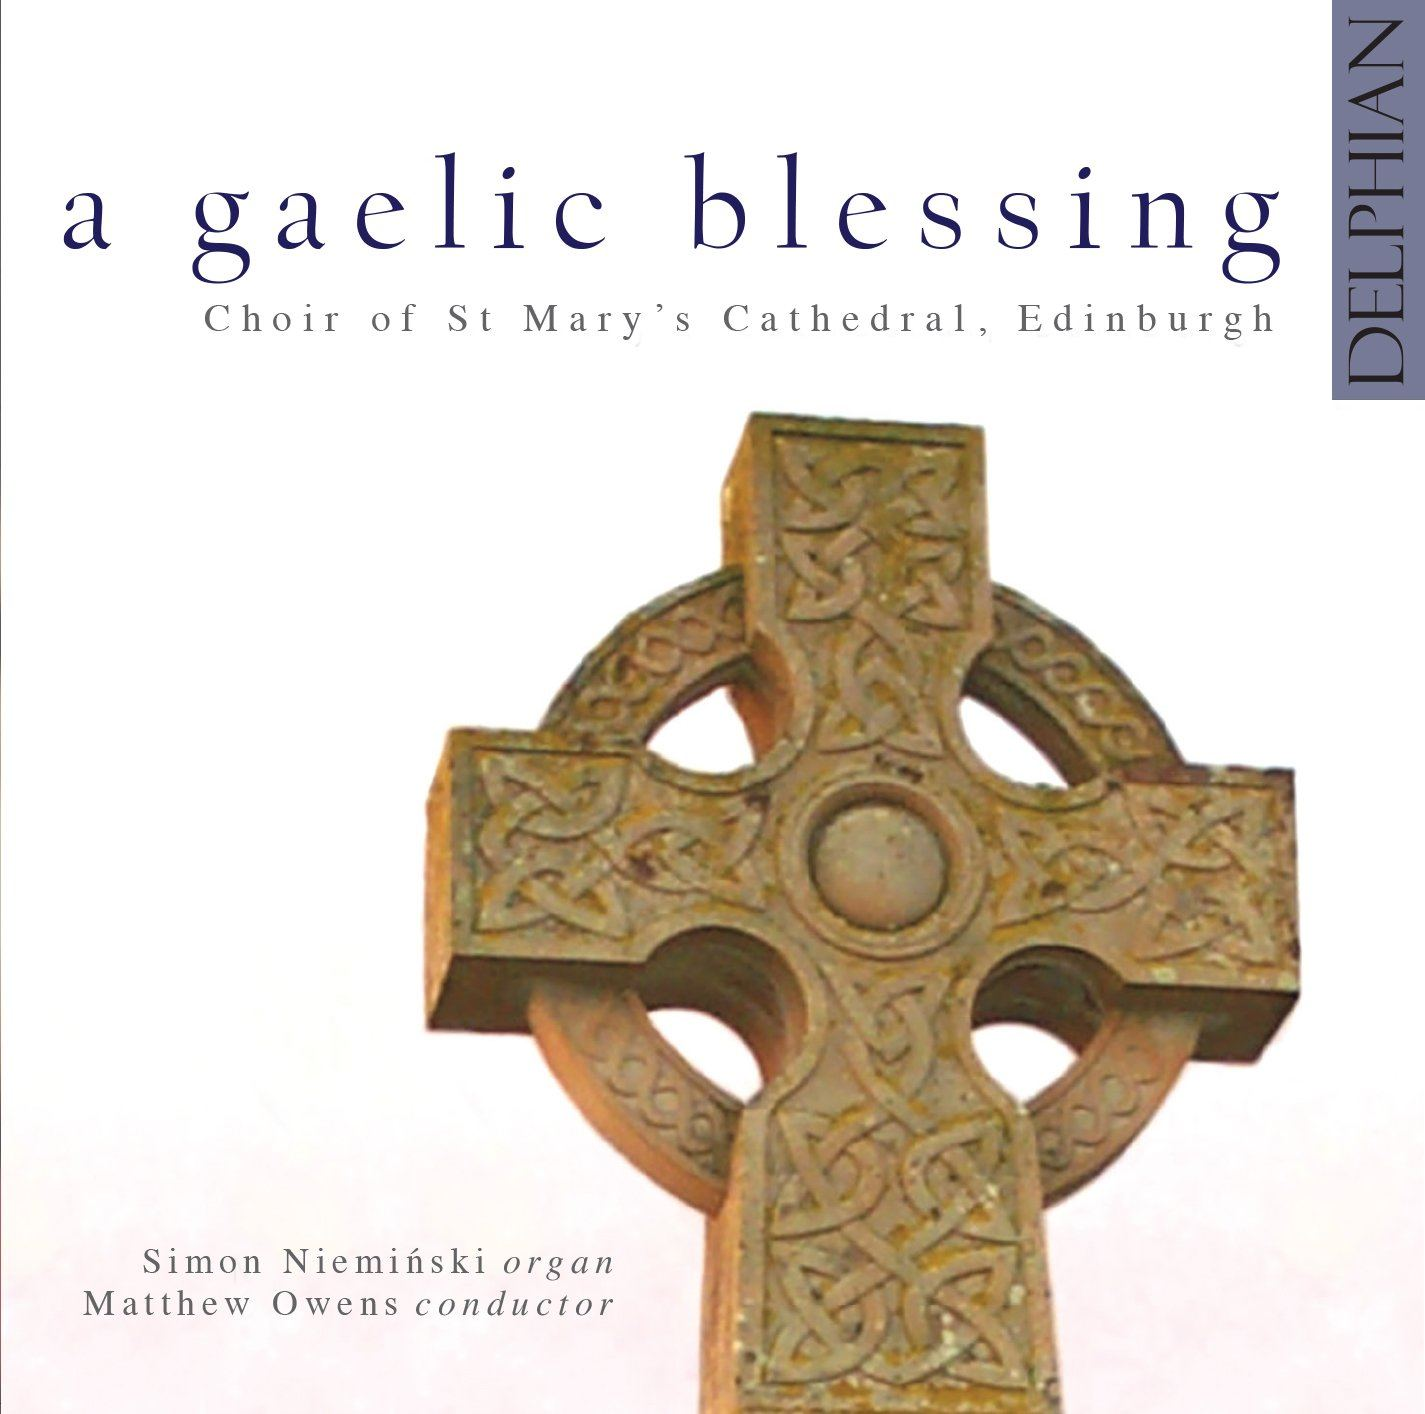 A Gaelic Blessing CD Delphian Records